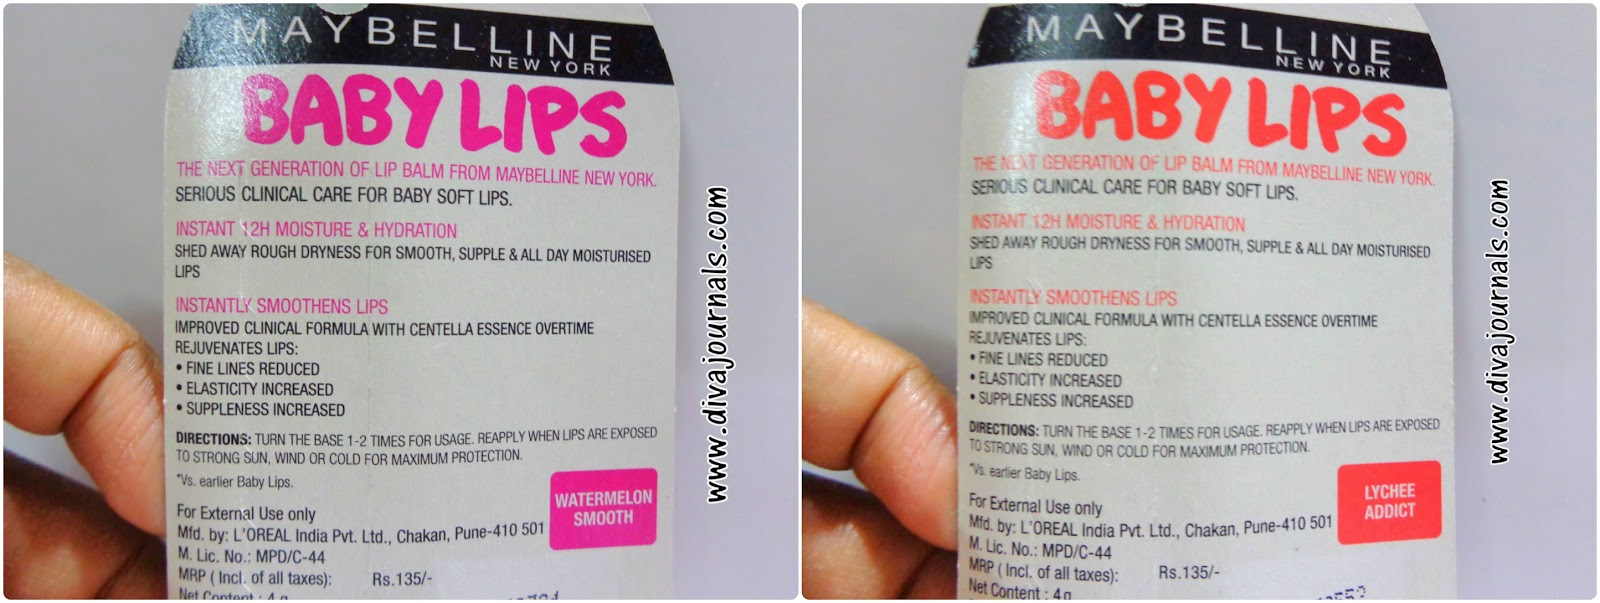 Maybelline Baby Lips Balm-Watermelon Smooth & Lychee Addict Reviews